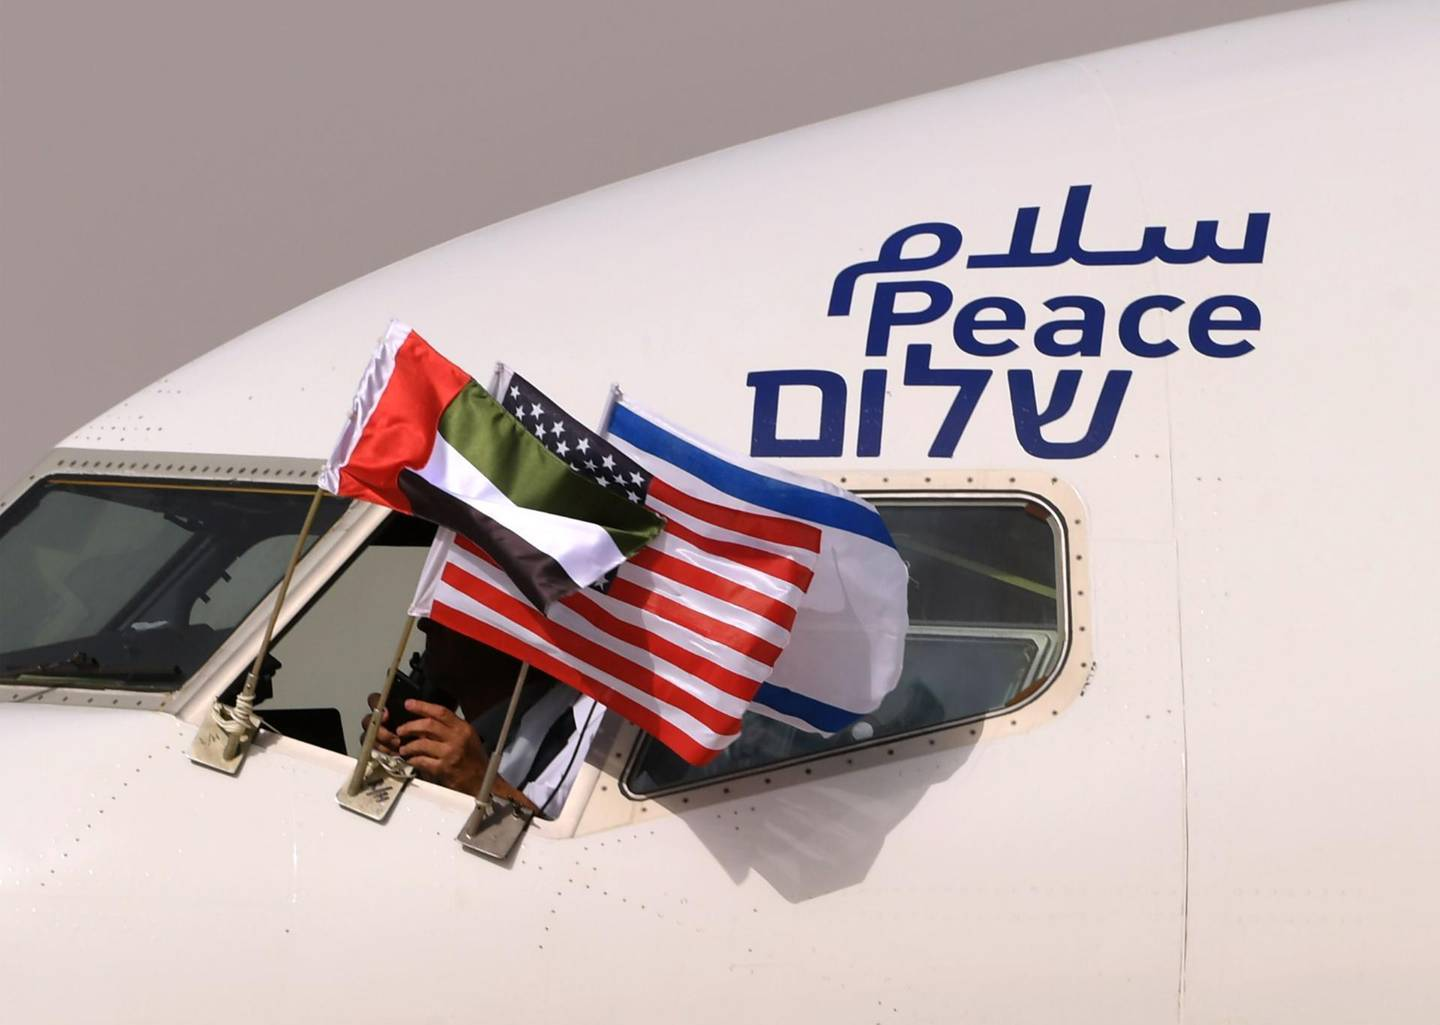 """(FILES) In this file photo taken on August 31, 2020, the Emirati, Israeli and US flags are picture attached to an air-plane of Israel's El Al, adorned with the word """"peace"""" in Arabic, English and Hebrew, upon it's arrival at the Abu Dhabi airport in the first-ever commercial flight from Israel to the UAE. Israel and the United Arab Emirates will sign a US-brokered agreement normalizing their relations at the White House on September 15, 2020 a US official said on September 8. / AFP / KARIM SAHIB"""